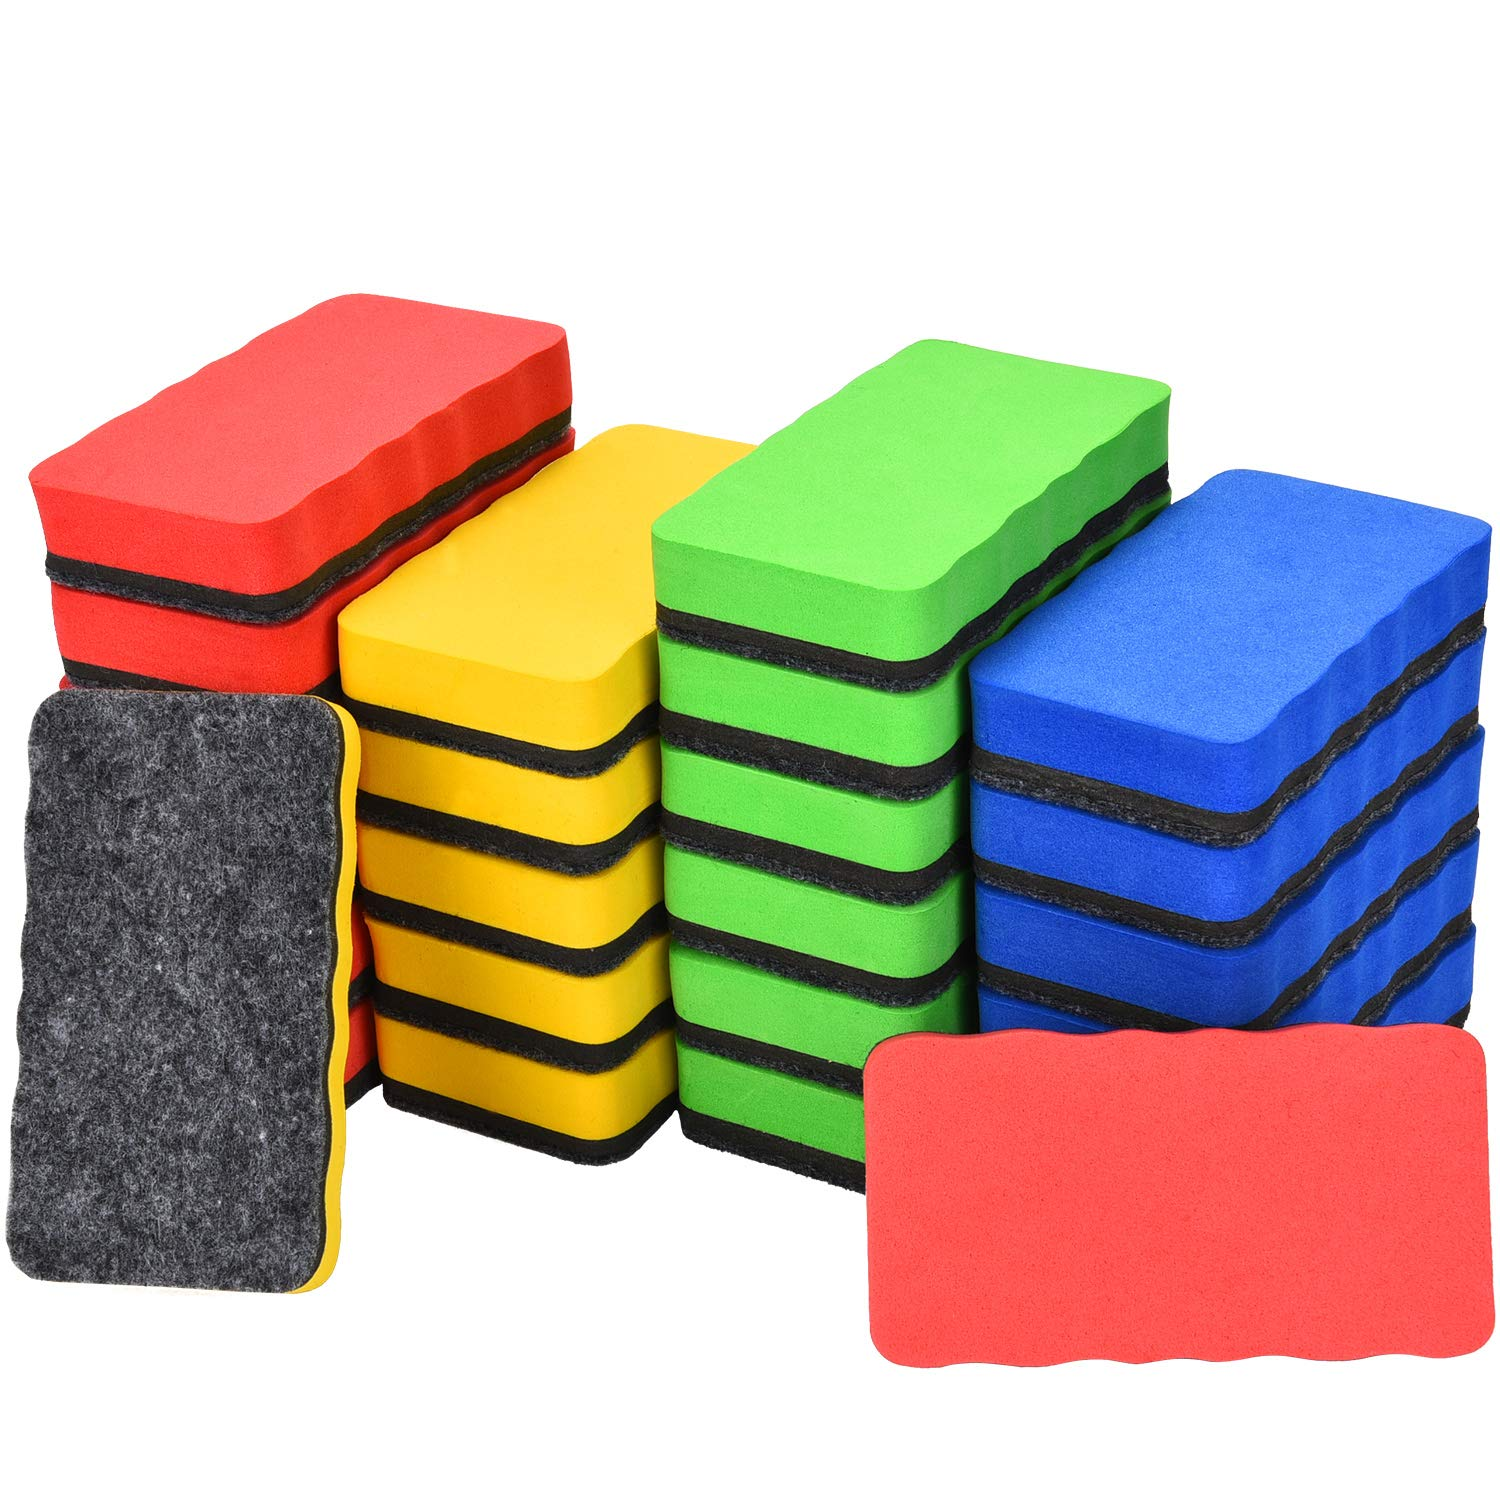 Tatuo 24 Pieces Magnetic Whiteboard Eraser Dry Erase Chalk Eraser for Classroom, Home and Office, 4.02 x 2.17 Inches, 4 Colors